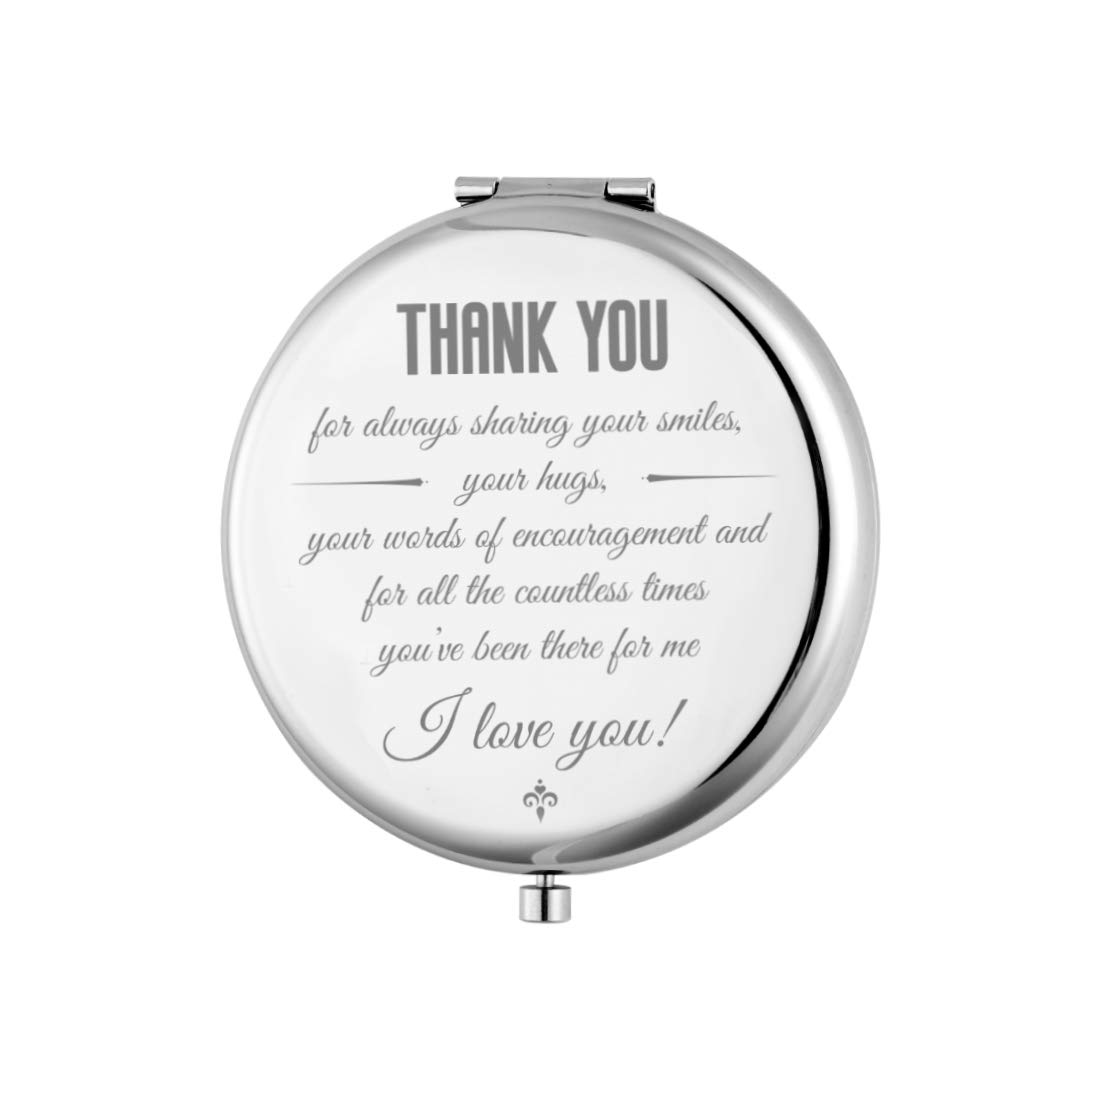 Mini Make up Mirror, Romantic Personalized Present for Anniversary, Birthday, Valentine's Day, Christmas, Wedding Day, Small Pocket Travel Makeup Mirror (Thank You)…